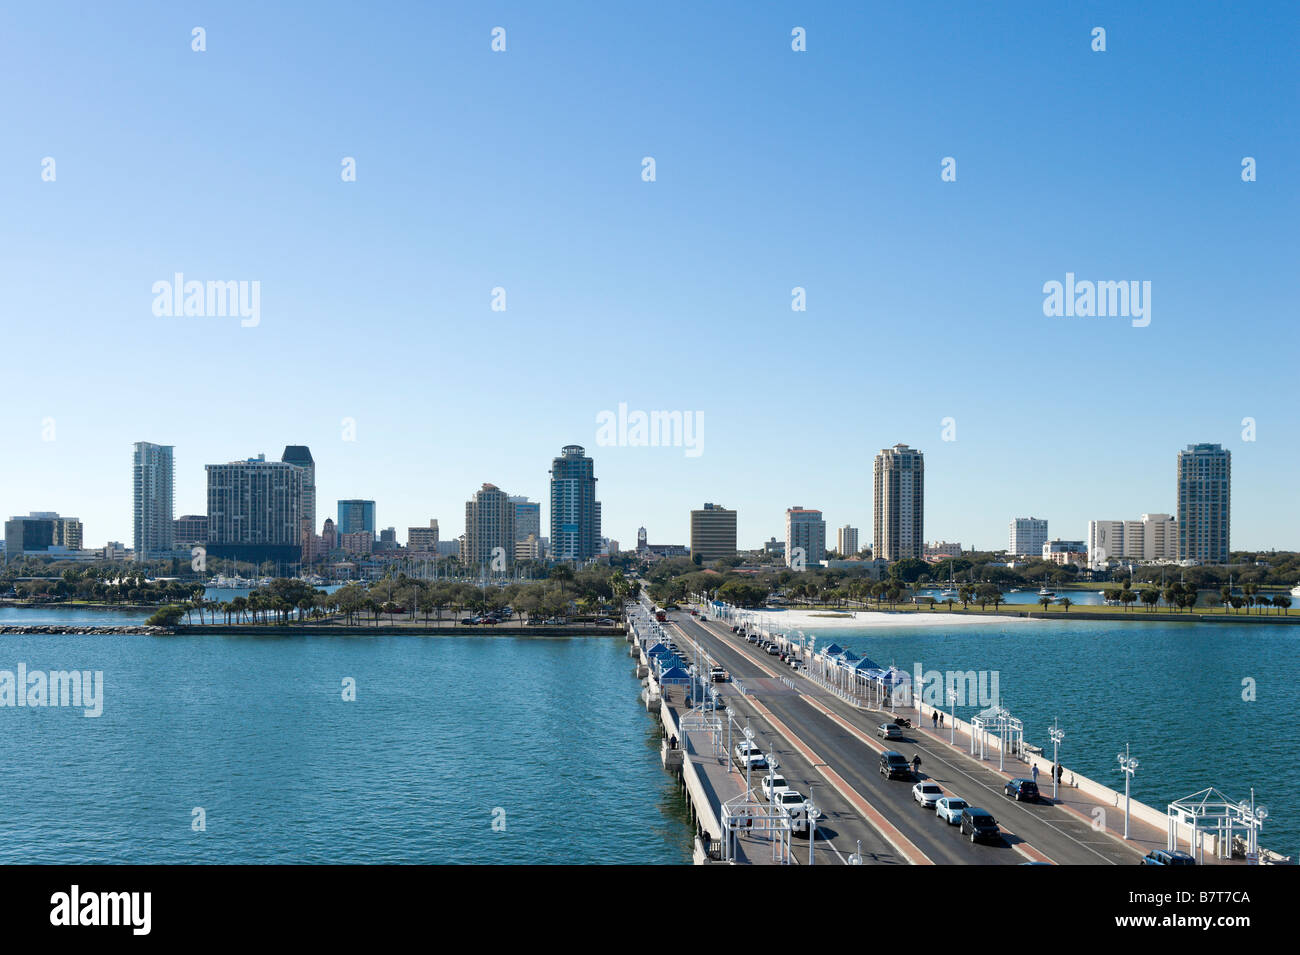 View of Downtown from St Petersburg Pier, St Petersburg, Gulf Coast, Florida, USA - Stock Image